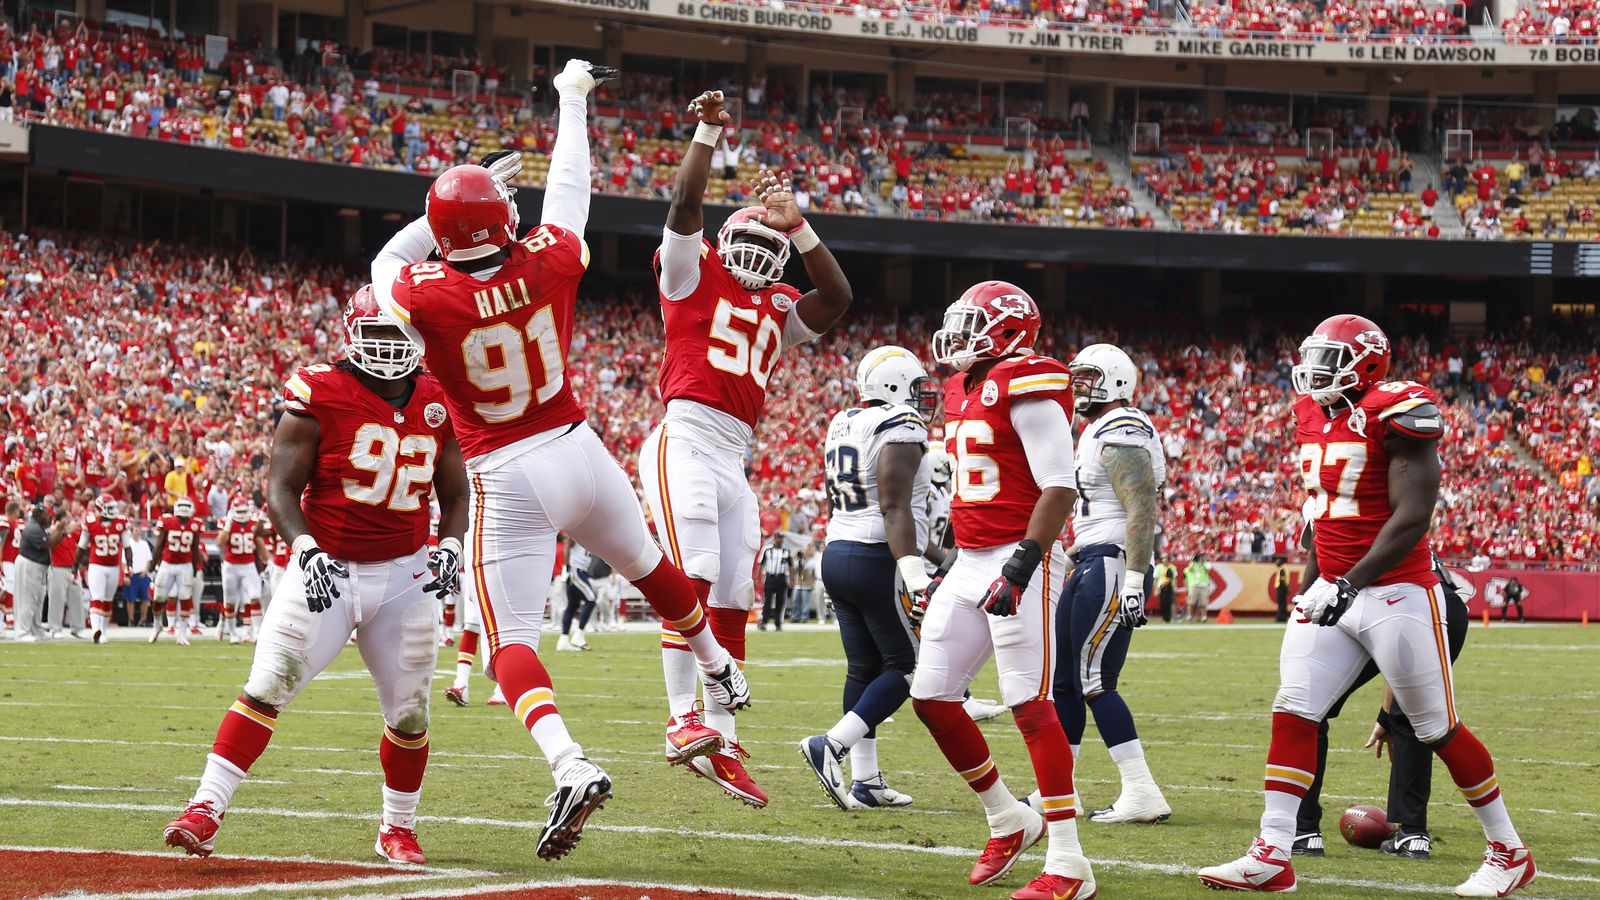 Chargers Vs Chiefs 2013 Is It The Pass Rush Or The